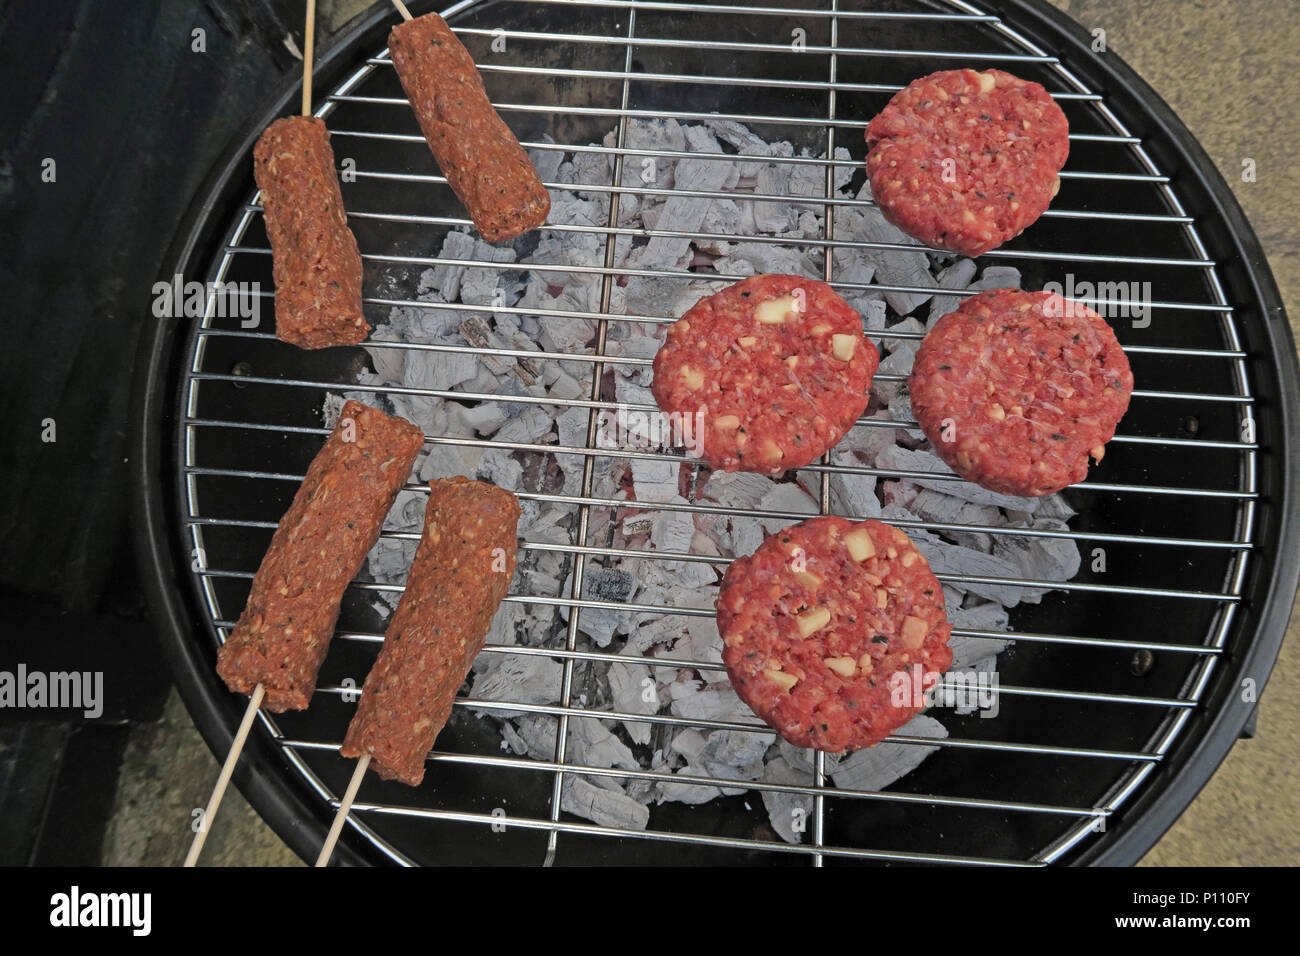 @HotpixUK,GoTonySmith,Dangers,of,food,poisoning,raw meat,raw,meats,food poisoning danger,from,summer,BBQ,meat,Sausages,beef burgers,raw burger,raw pork,raw beef,Kebabs,under-cooked or raw,well cooked,undercooked,under-cooked,hazard,care,hazardous,charcoal,charcoals,home barbecue,prepare food correctly,avoid contamination,cook food properly,meat,cooking,meat on griddle,raw kebabs,Dangers,of,the,garden,barbecue,bacteria,cross-contamination,dangers,cross contamination,killing harmful bacteria,minced meat products